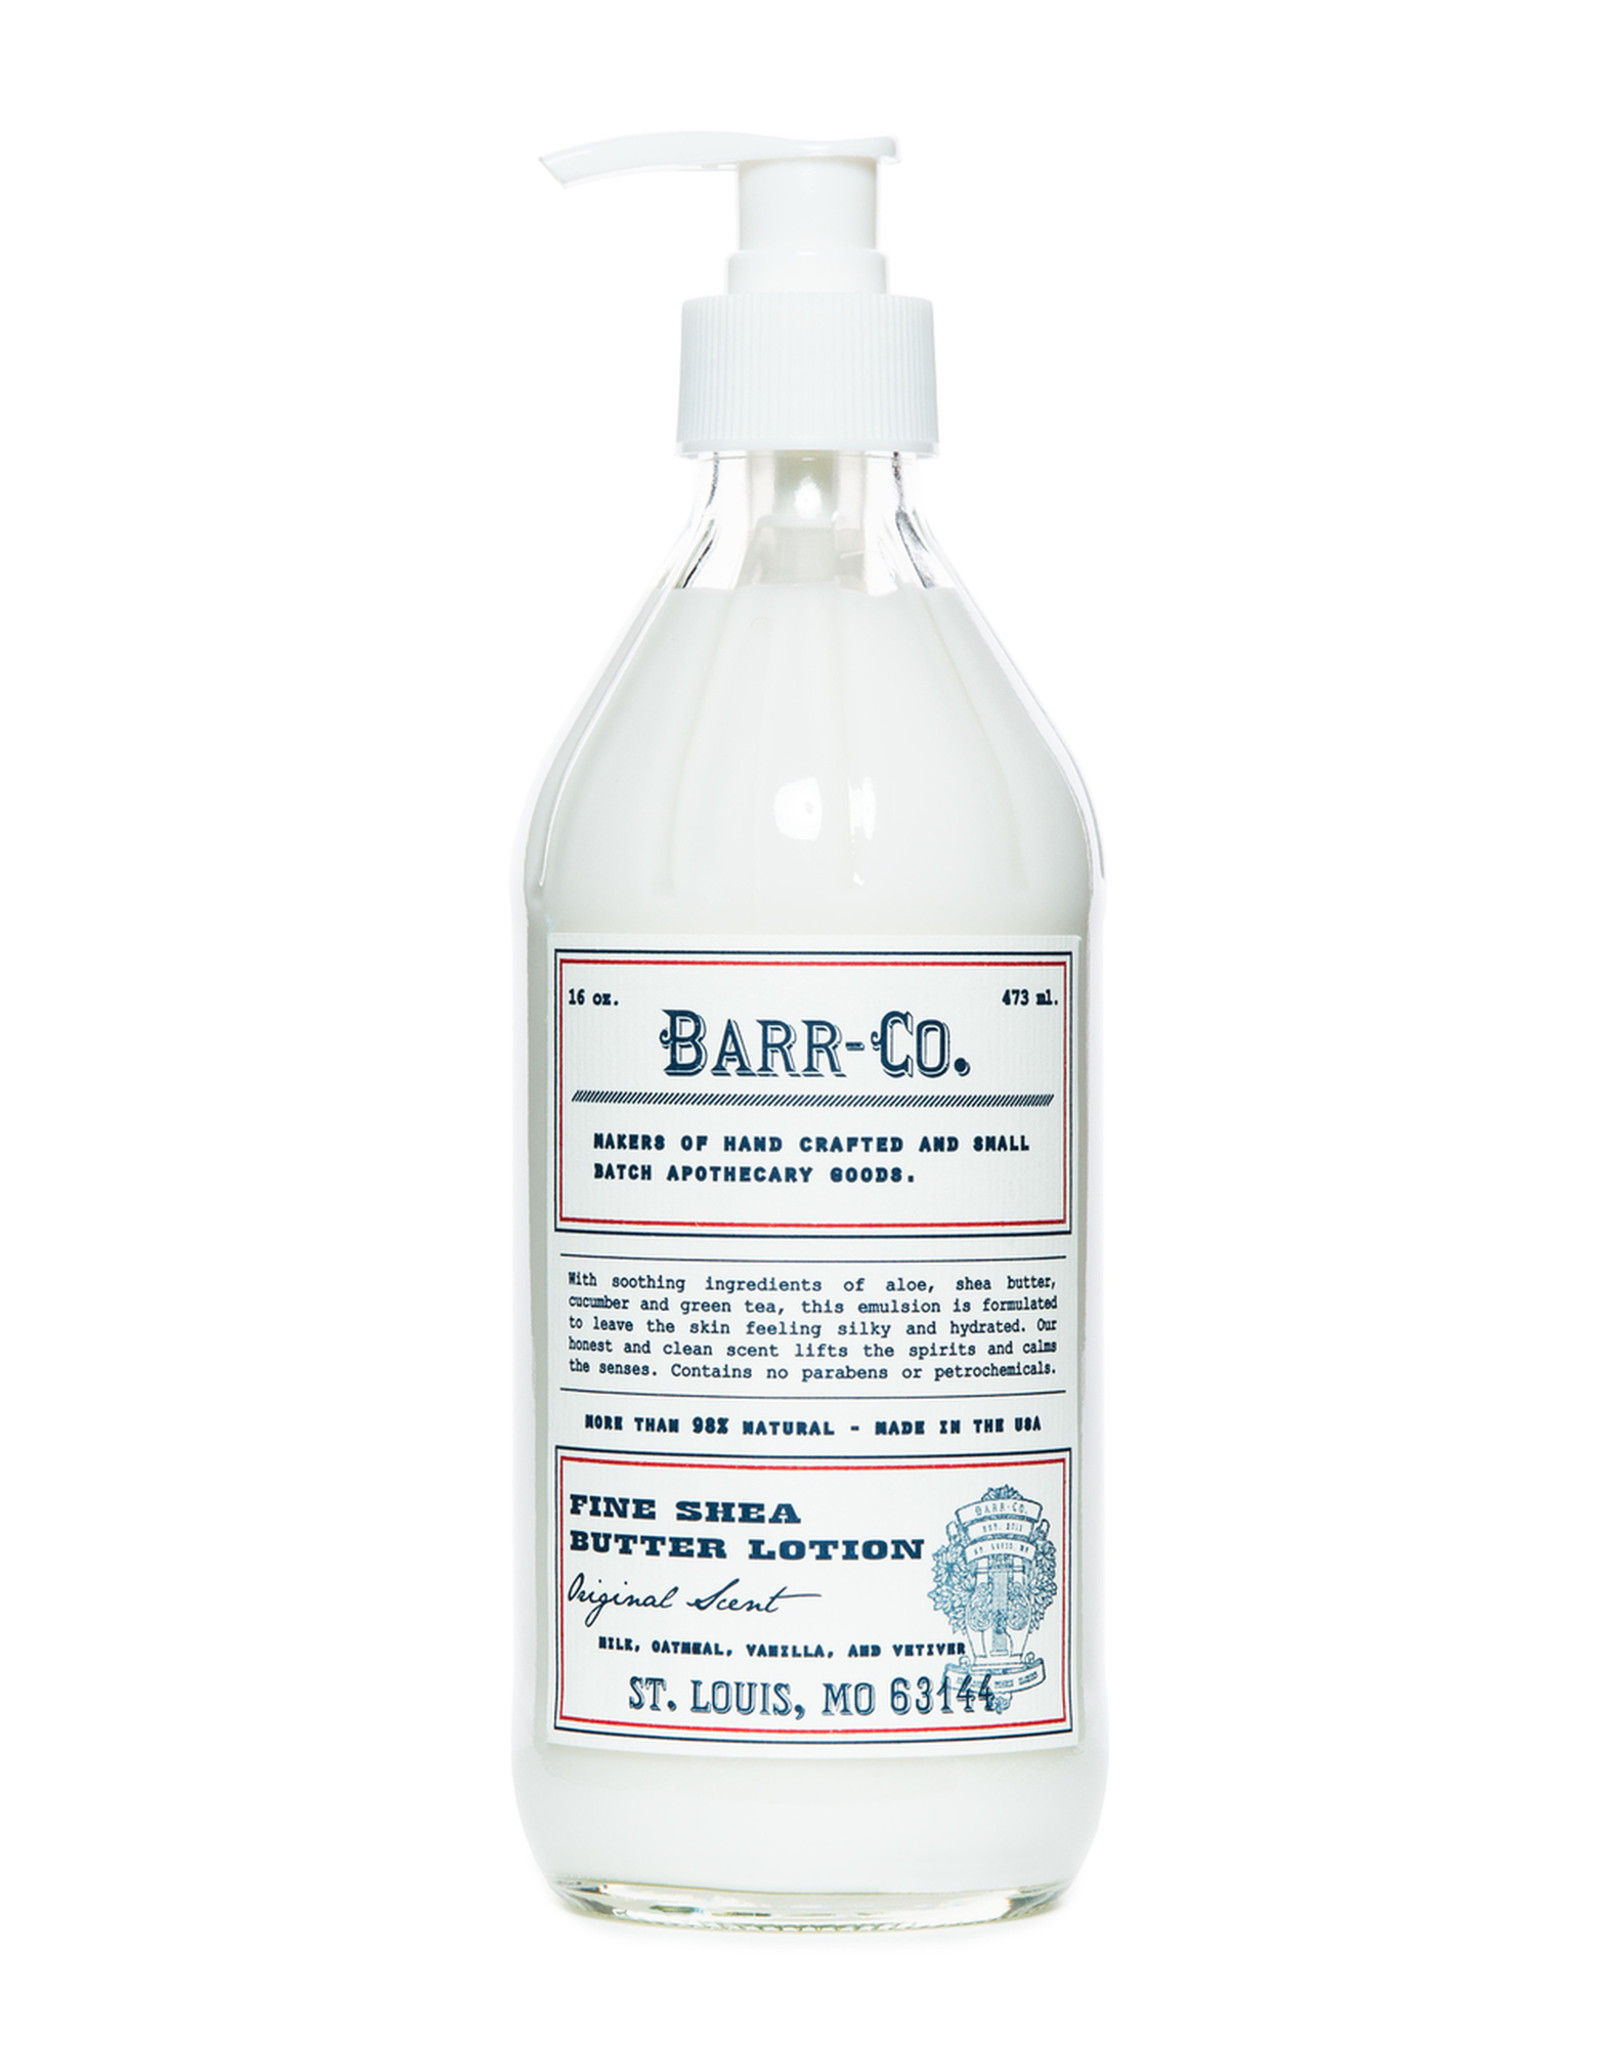 Bco Hand & Body Shea Butter Lotion Original Scent